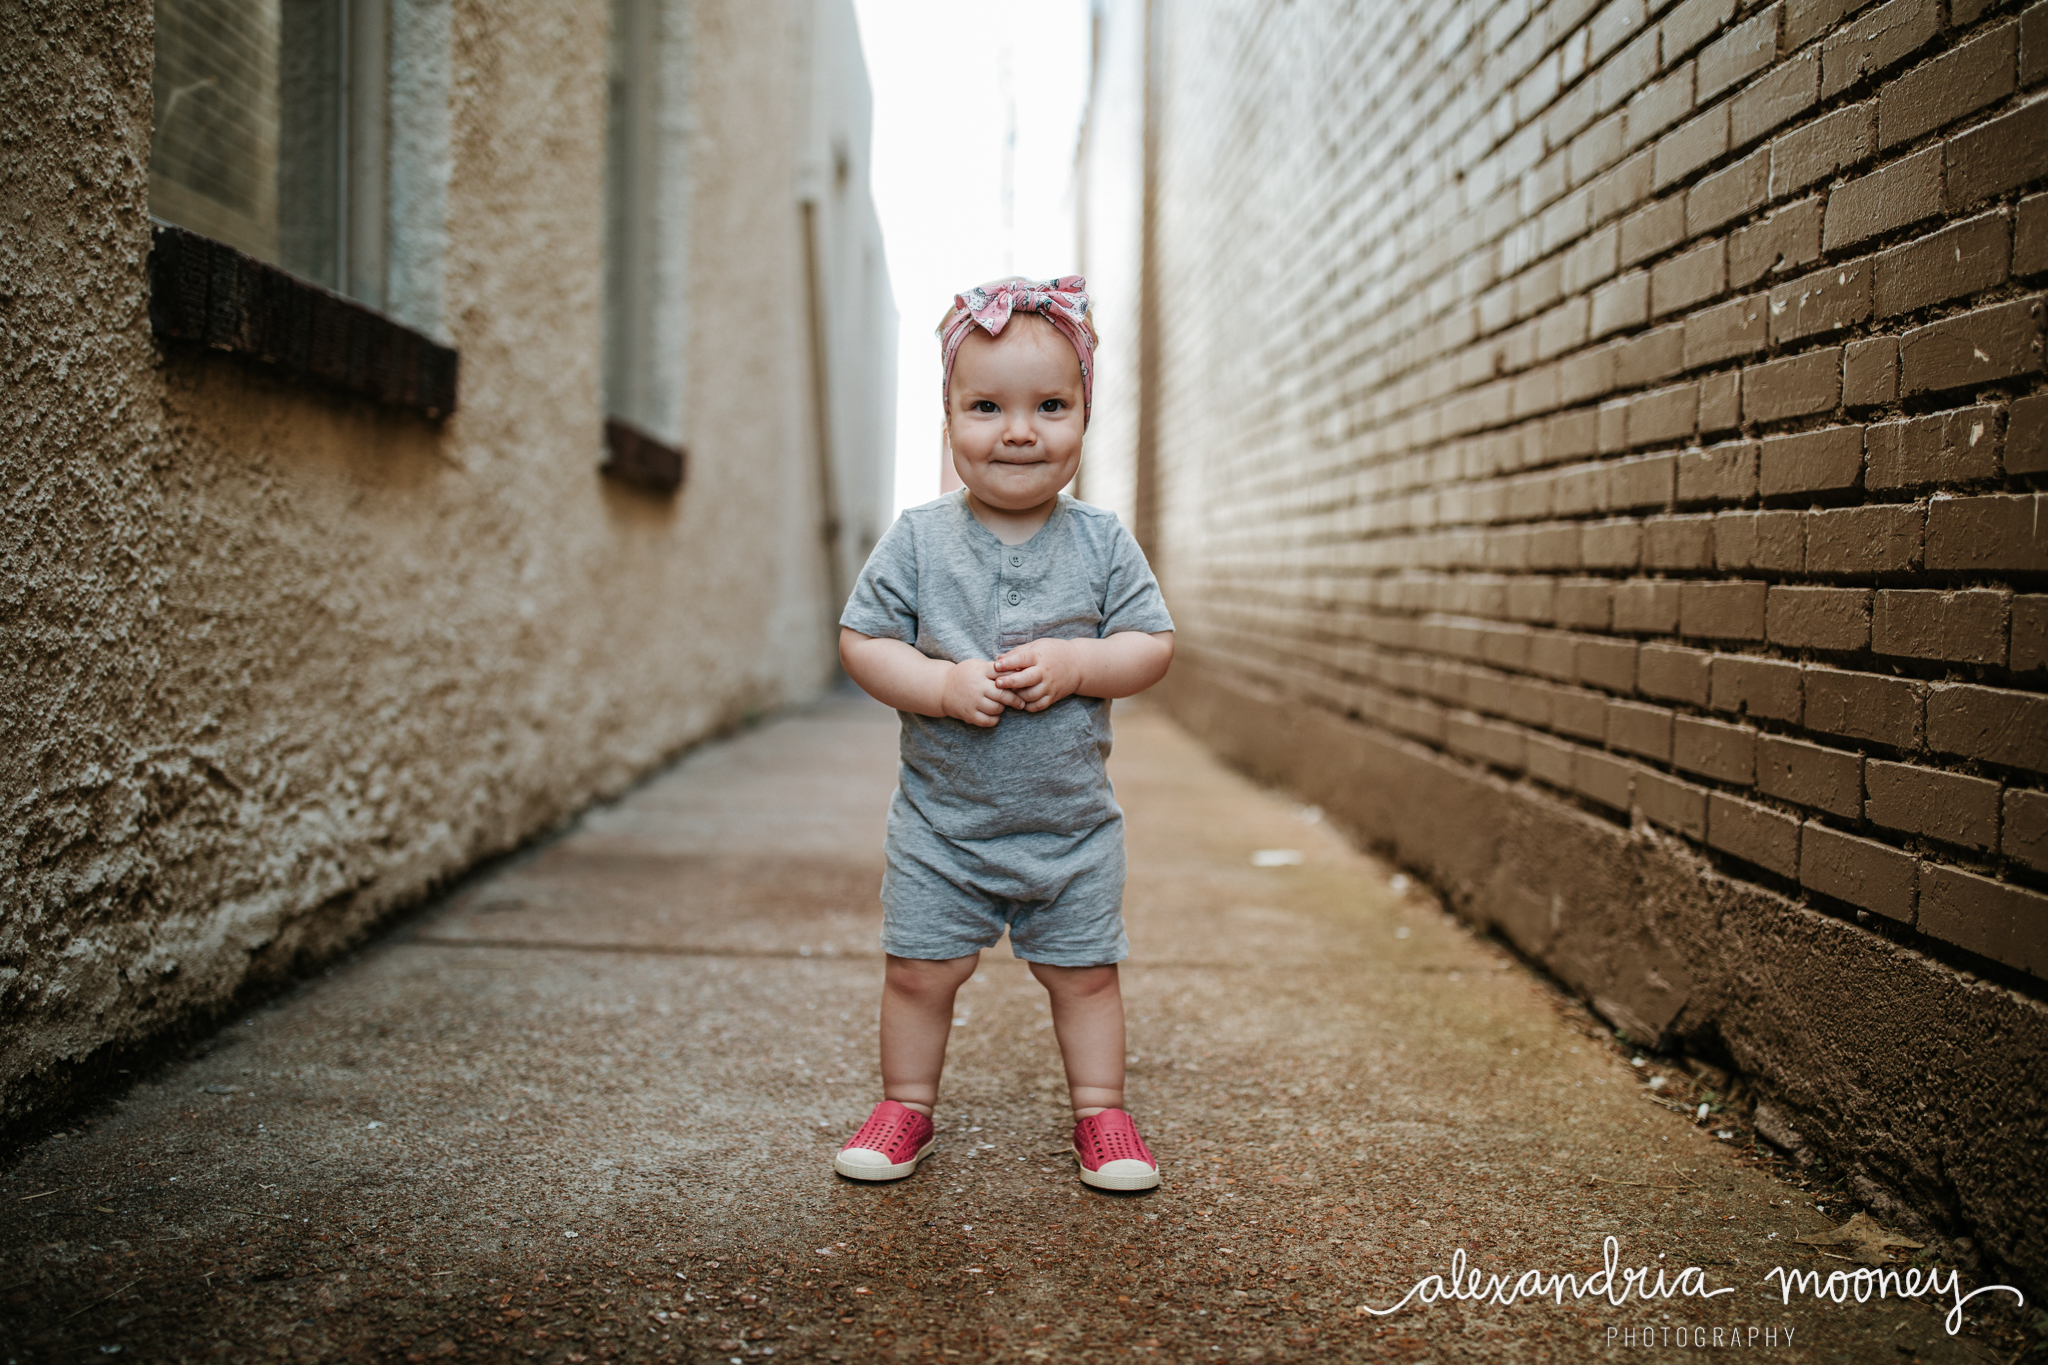 AnnieintheAlley_Watermarked-2.jpg